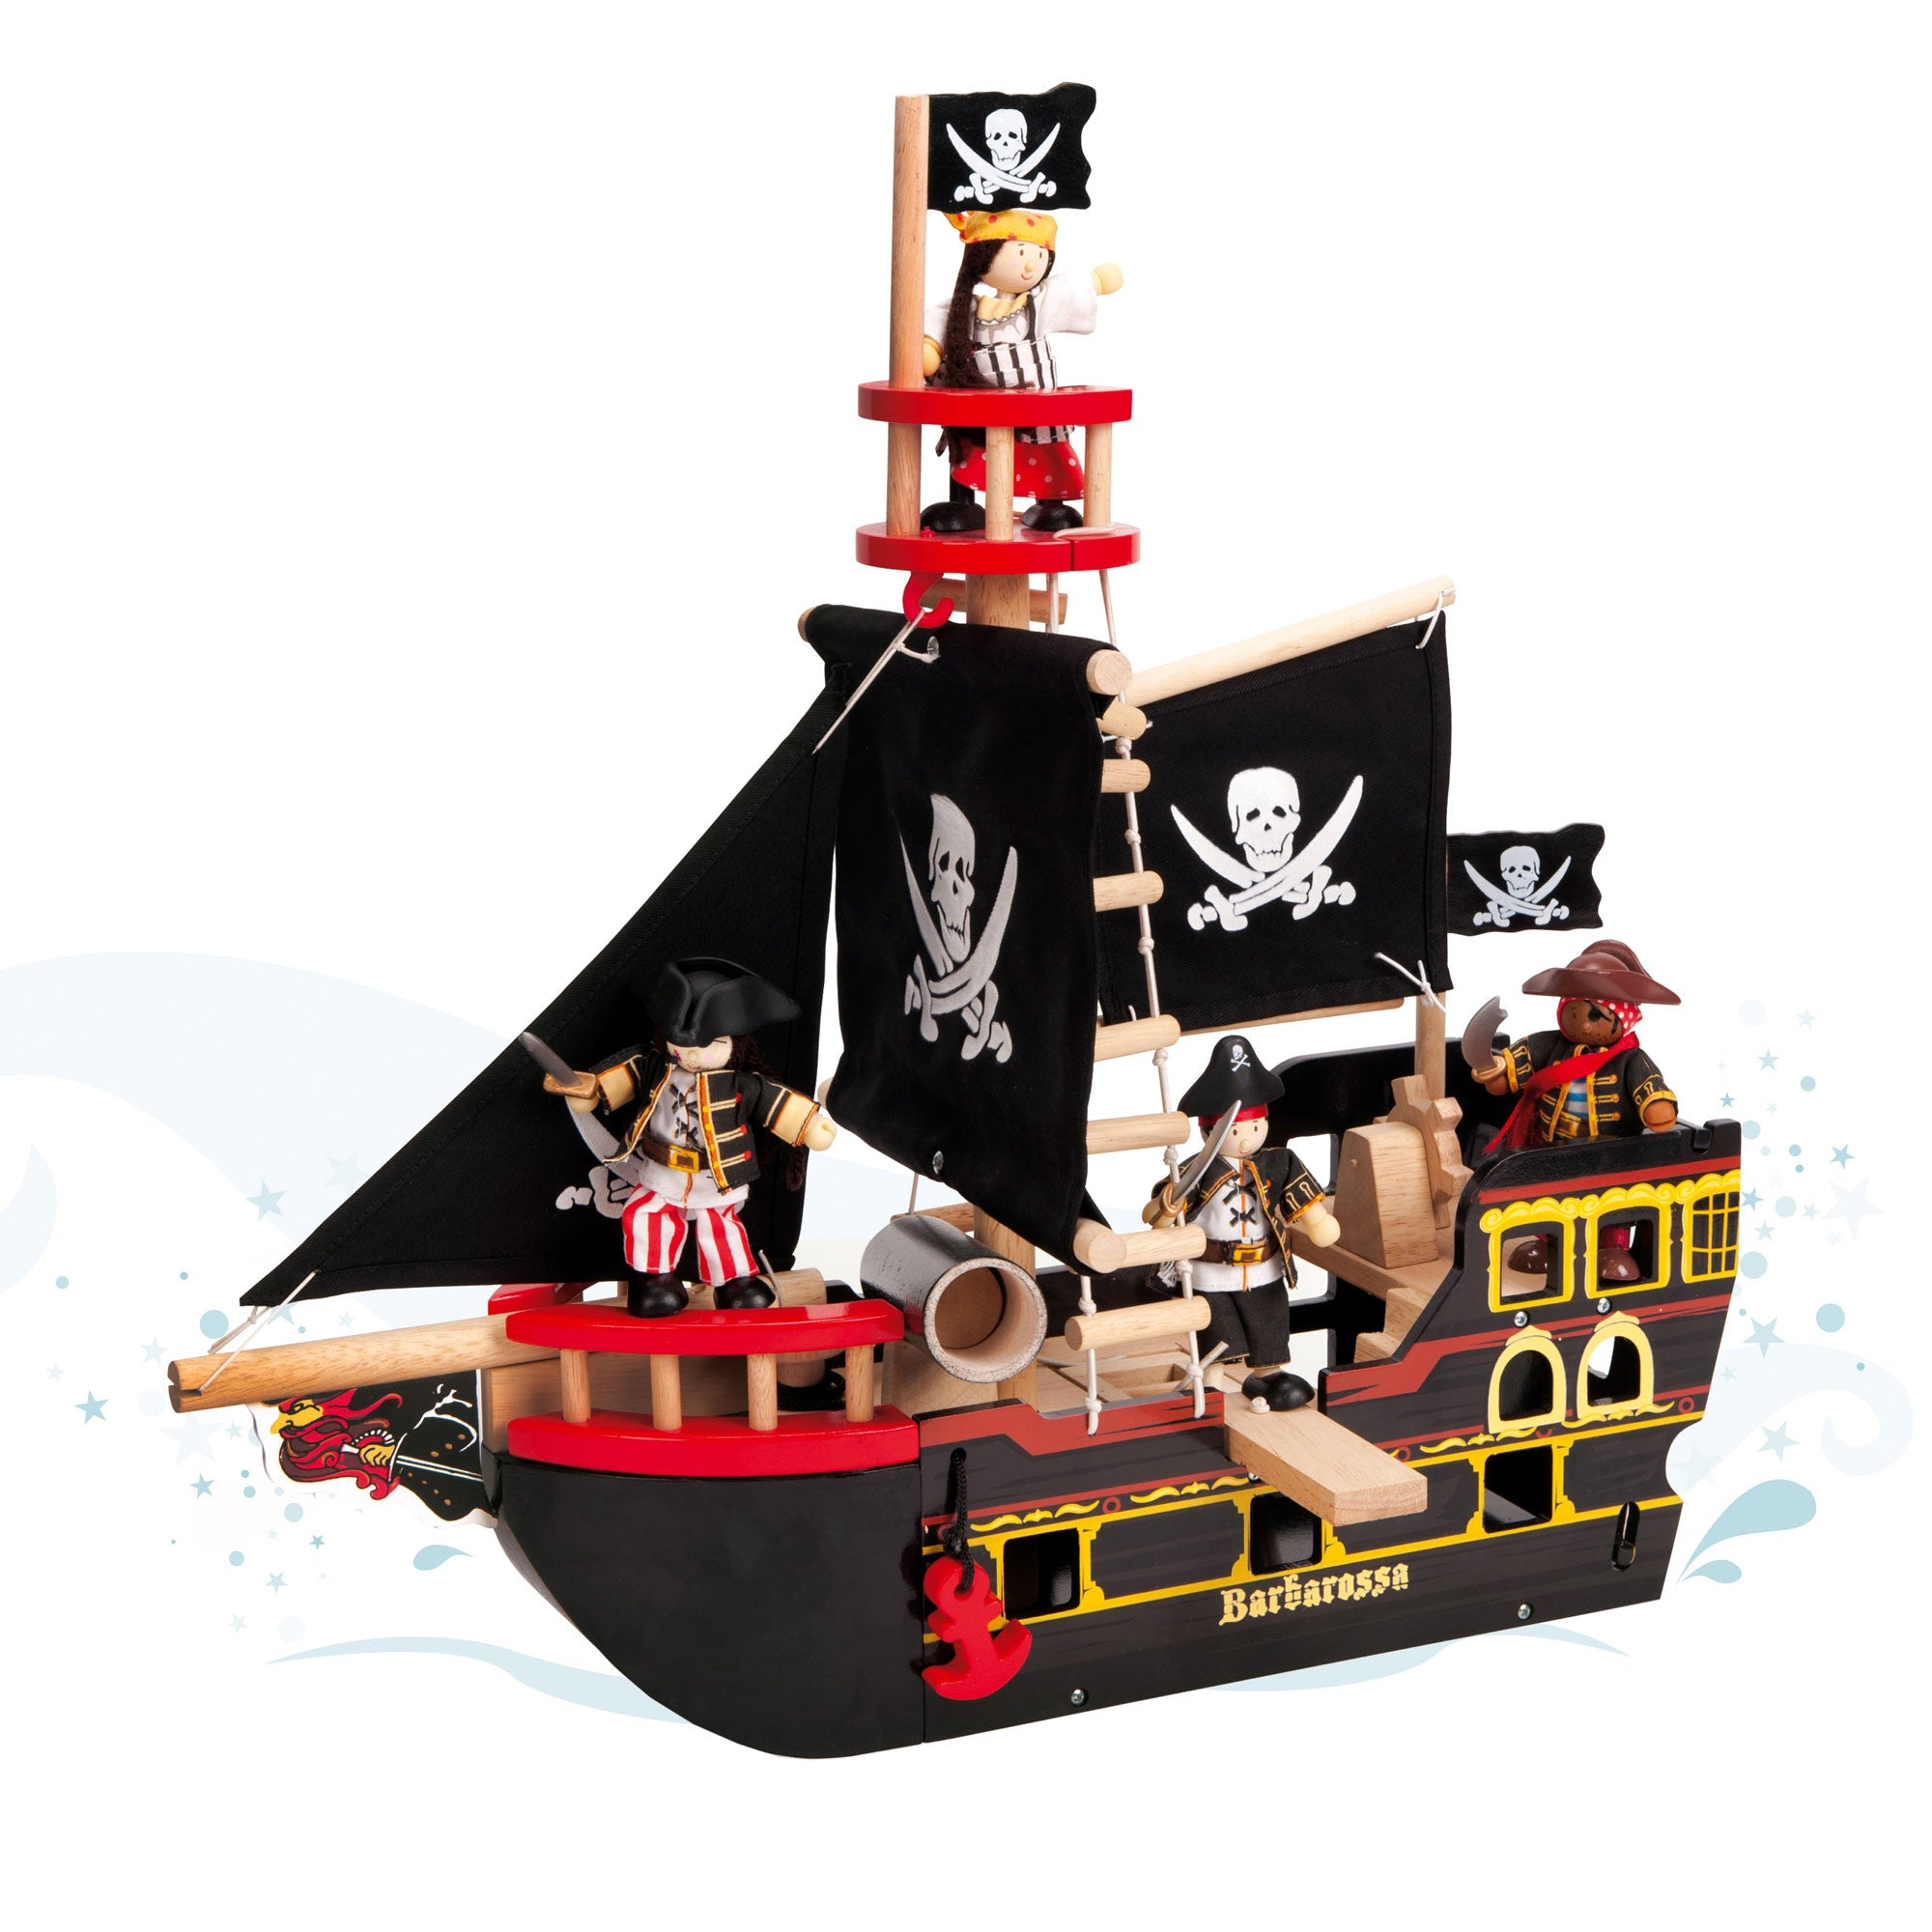 Le Toy Van Barbarossa Pirate Ship Le Toy Van Toys at Little Earth Nest Eco Shop